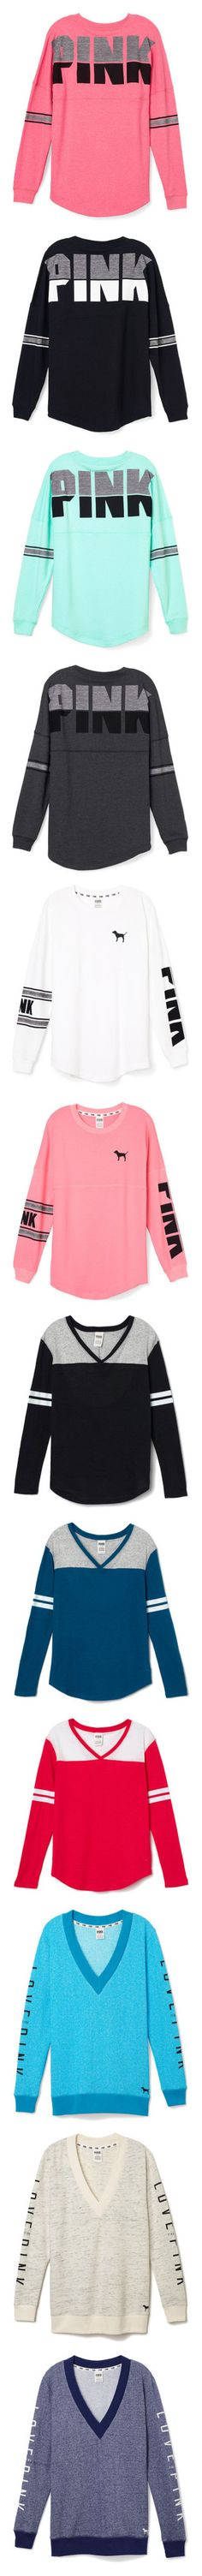 """Victoria's Secret PINK Long Sleeve Shirts"" by tinashe-143 ❤ liked on Polyvore featuring tops, hoodies, sweatshirts, shirts, sweaters, logo sweatshirts, mesh shirt, victoria secret pink shirts, crew sweatshirt and logo shirts"